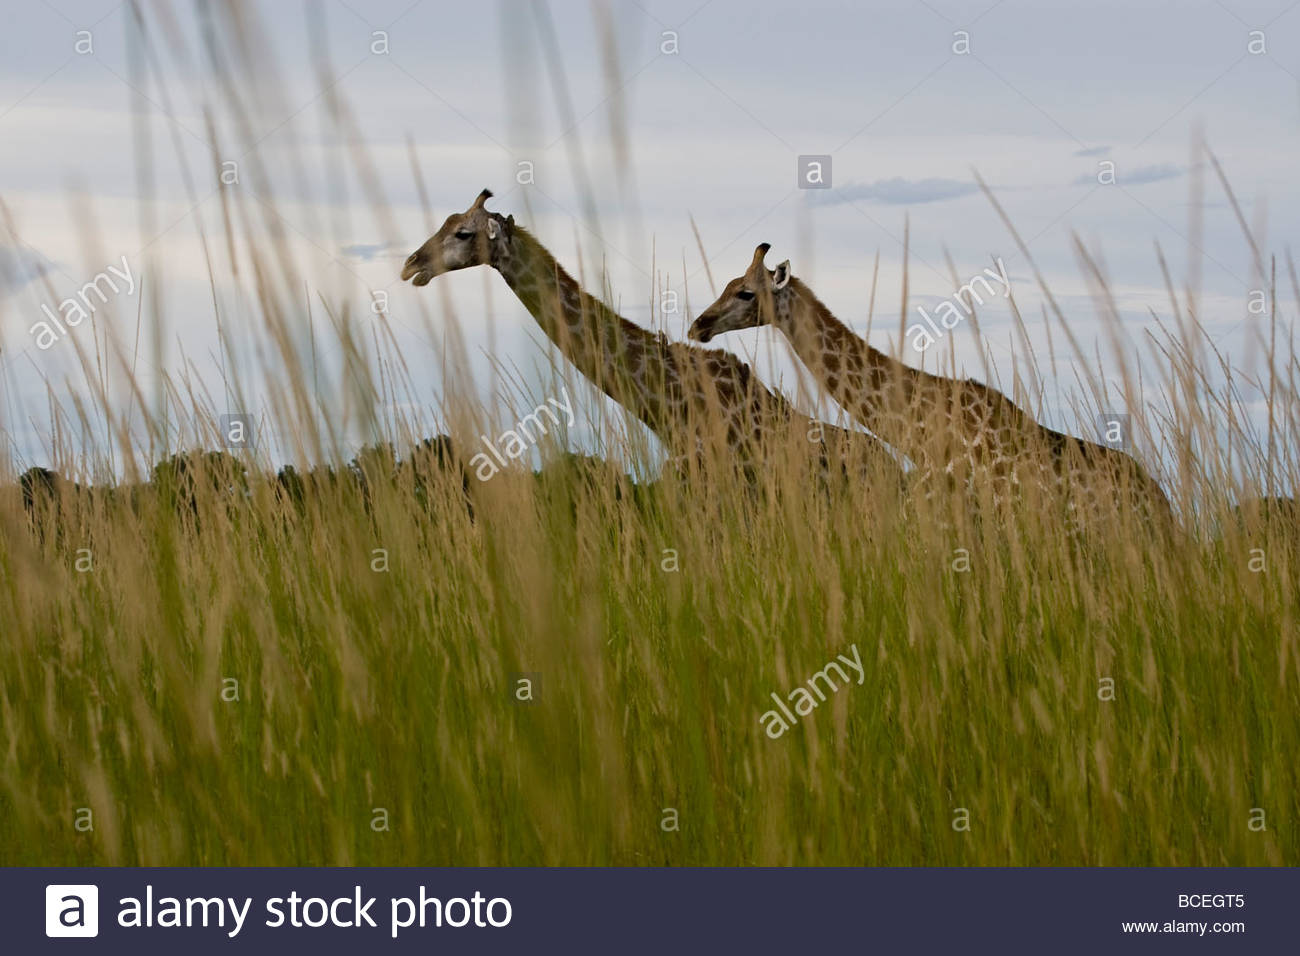 Two giraffes walking through tall grass and bushes Stock Photo